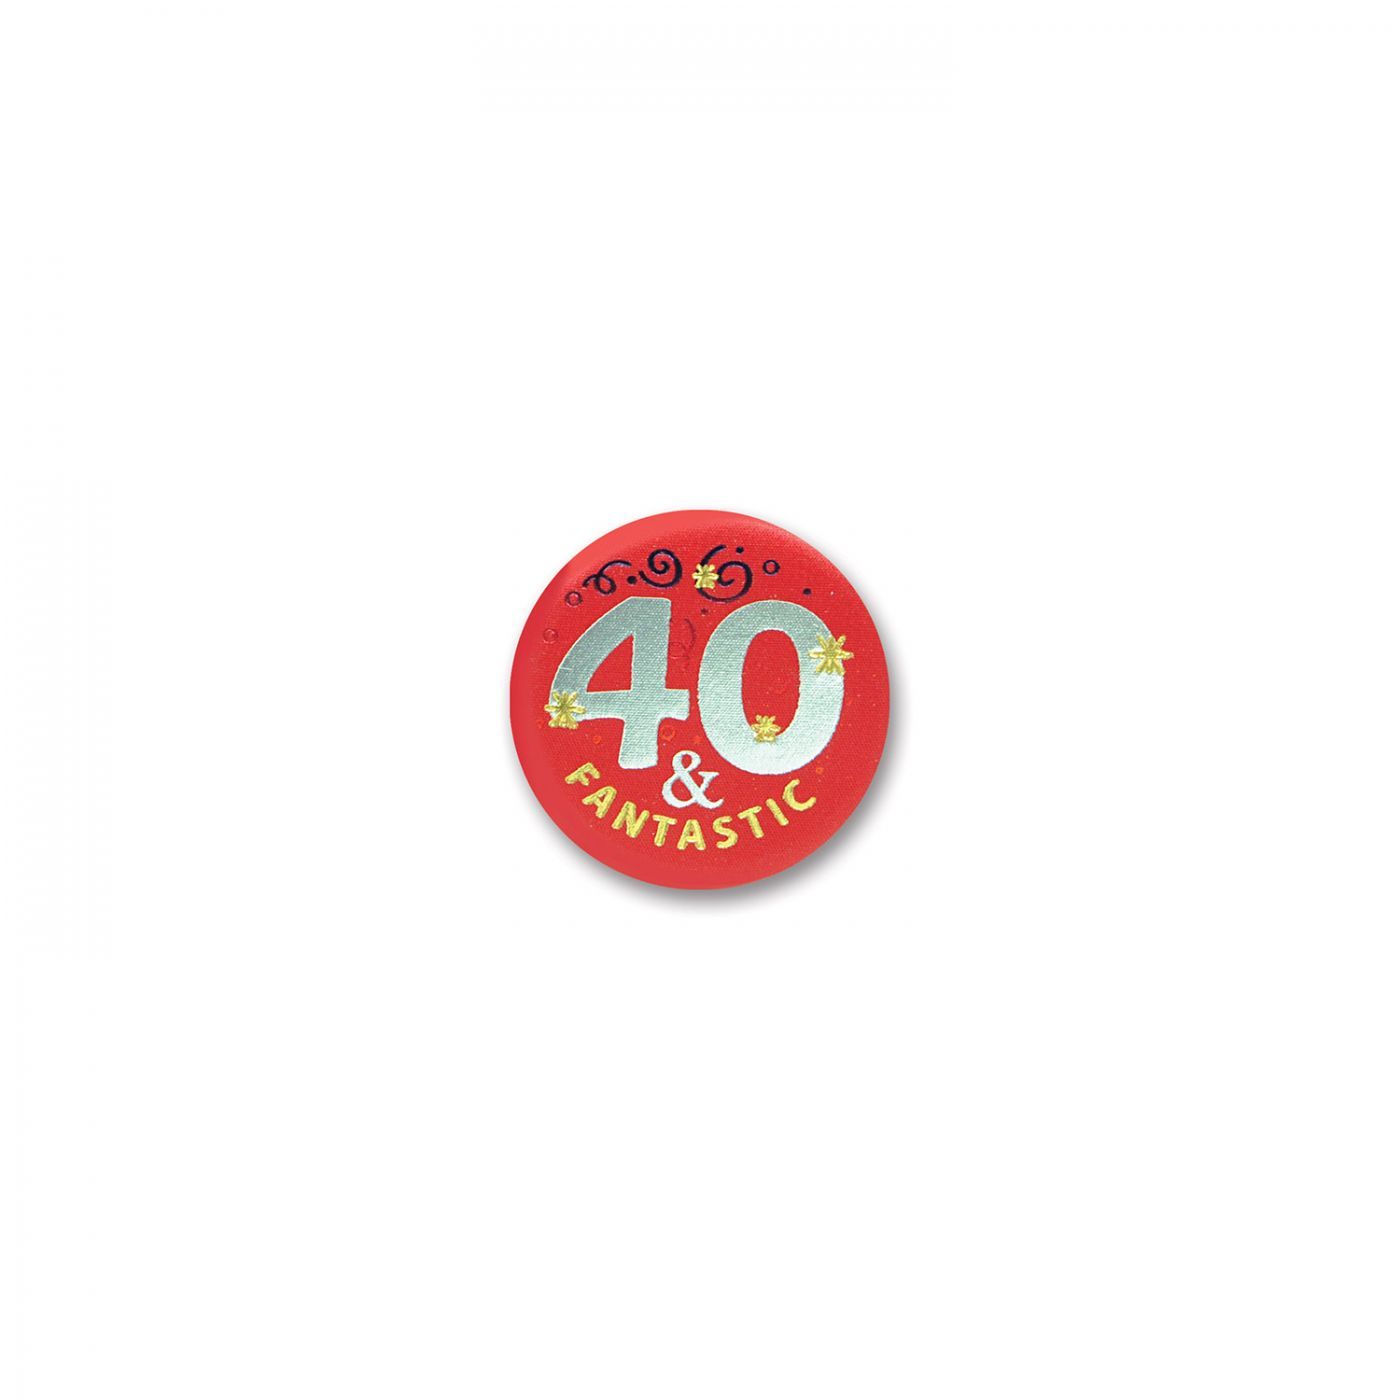 Image of 40 & Fantastic Satin Button (6)